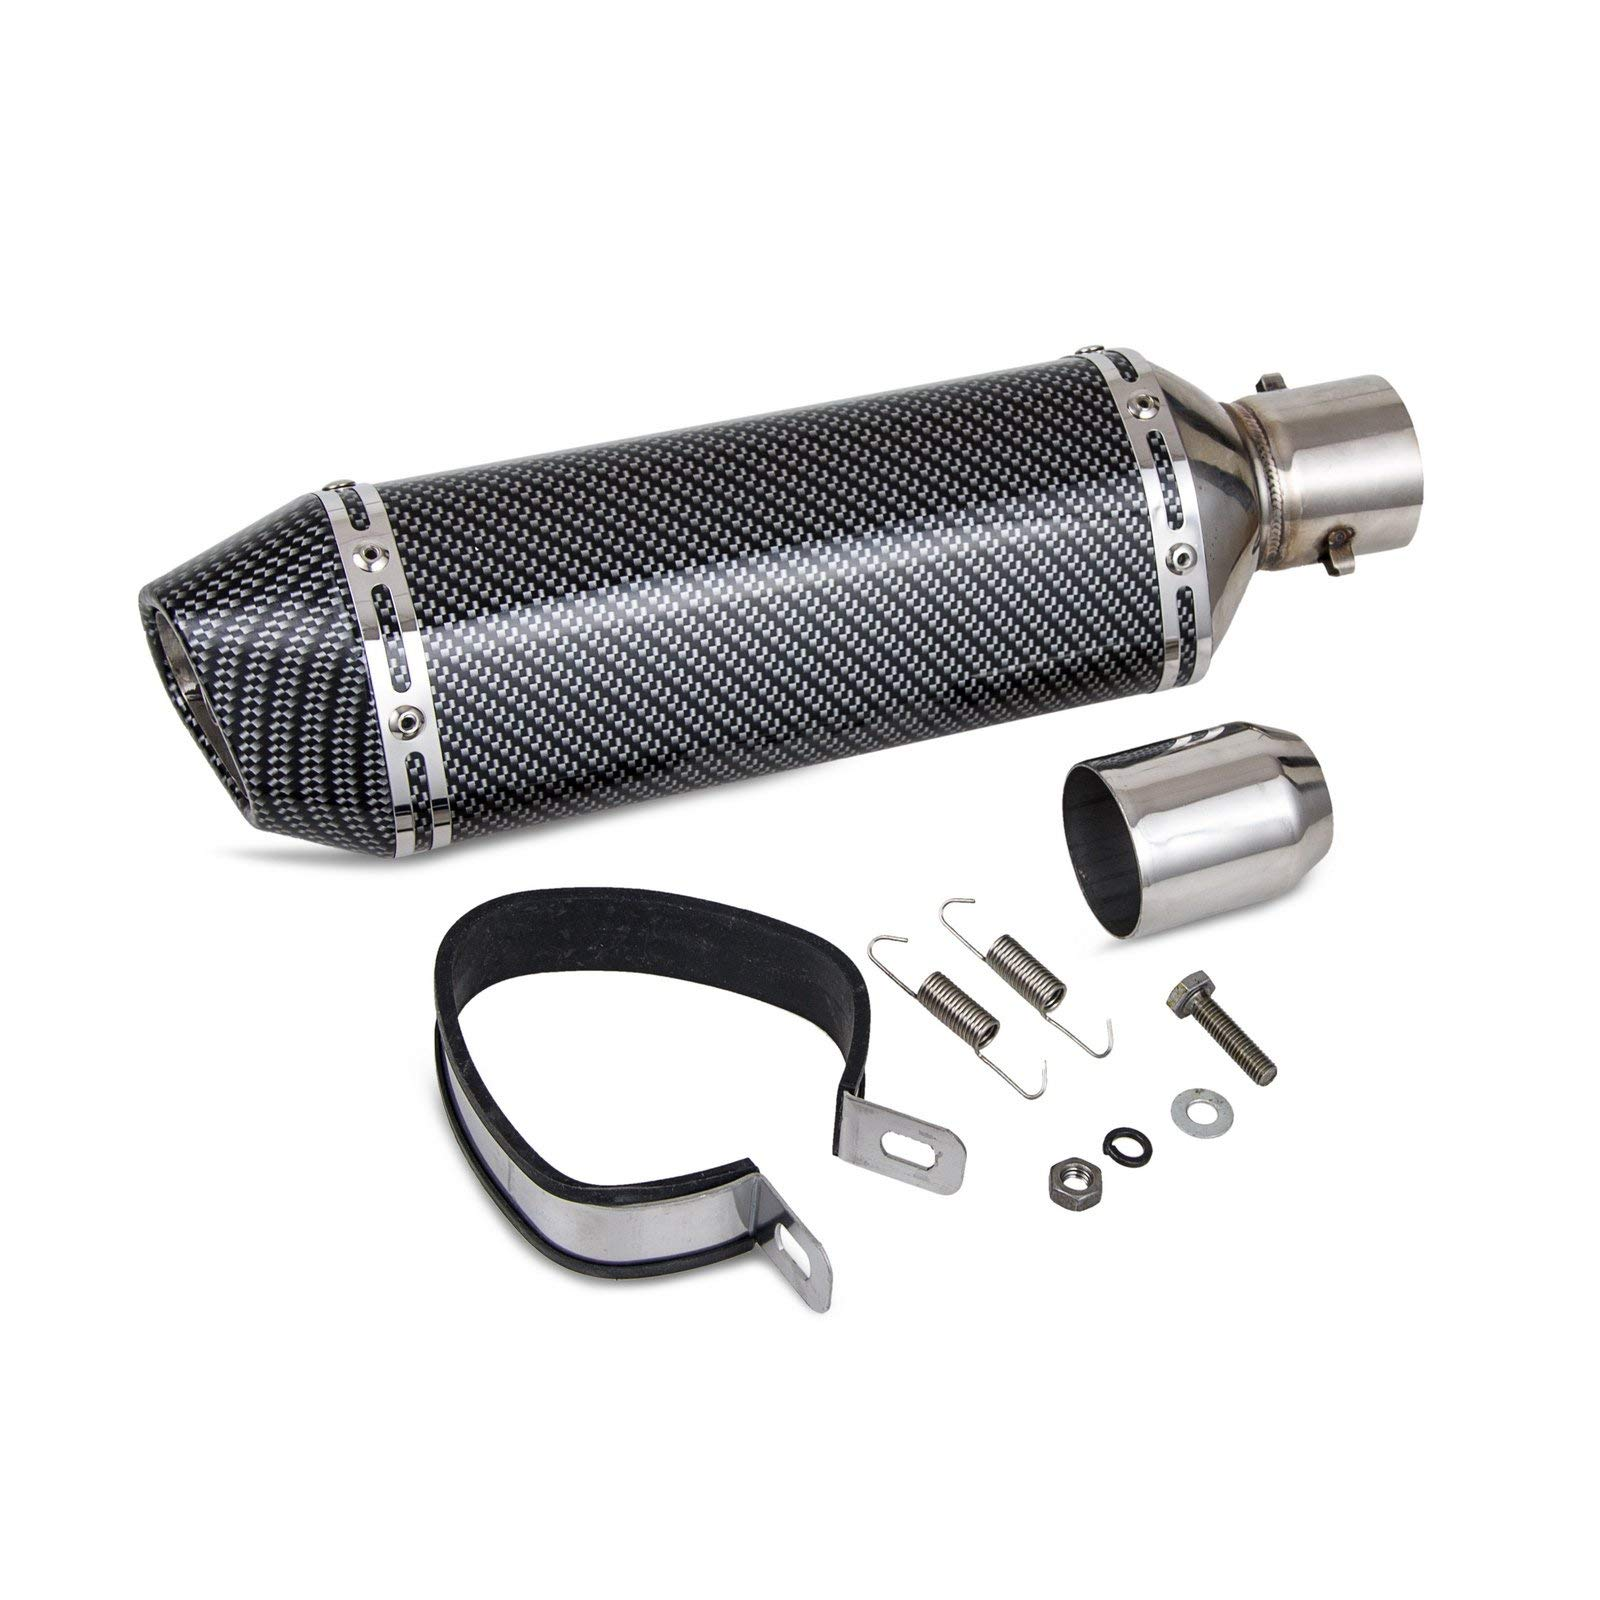 NICECNC Carbon Fiber Painted 1.5-2''Inlet Exhaust Muffler with Removable DB Killer for Street/Sport Motorcycles and Scooters with 38-51mm Diameter Exhaust Pipes by NICECNC